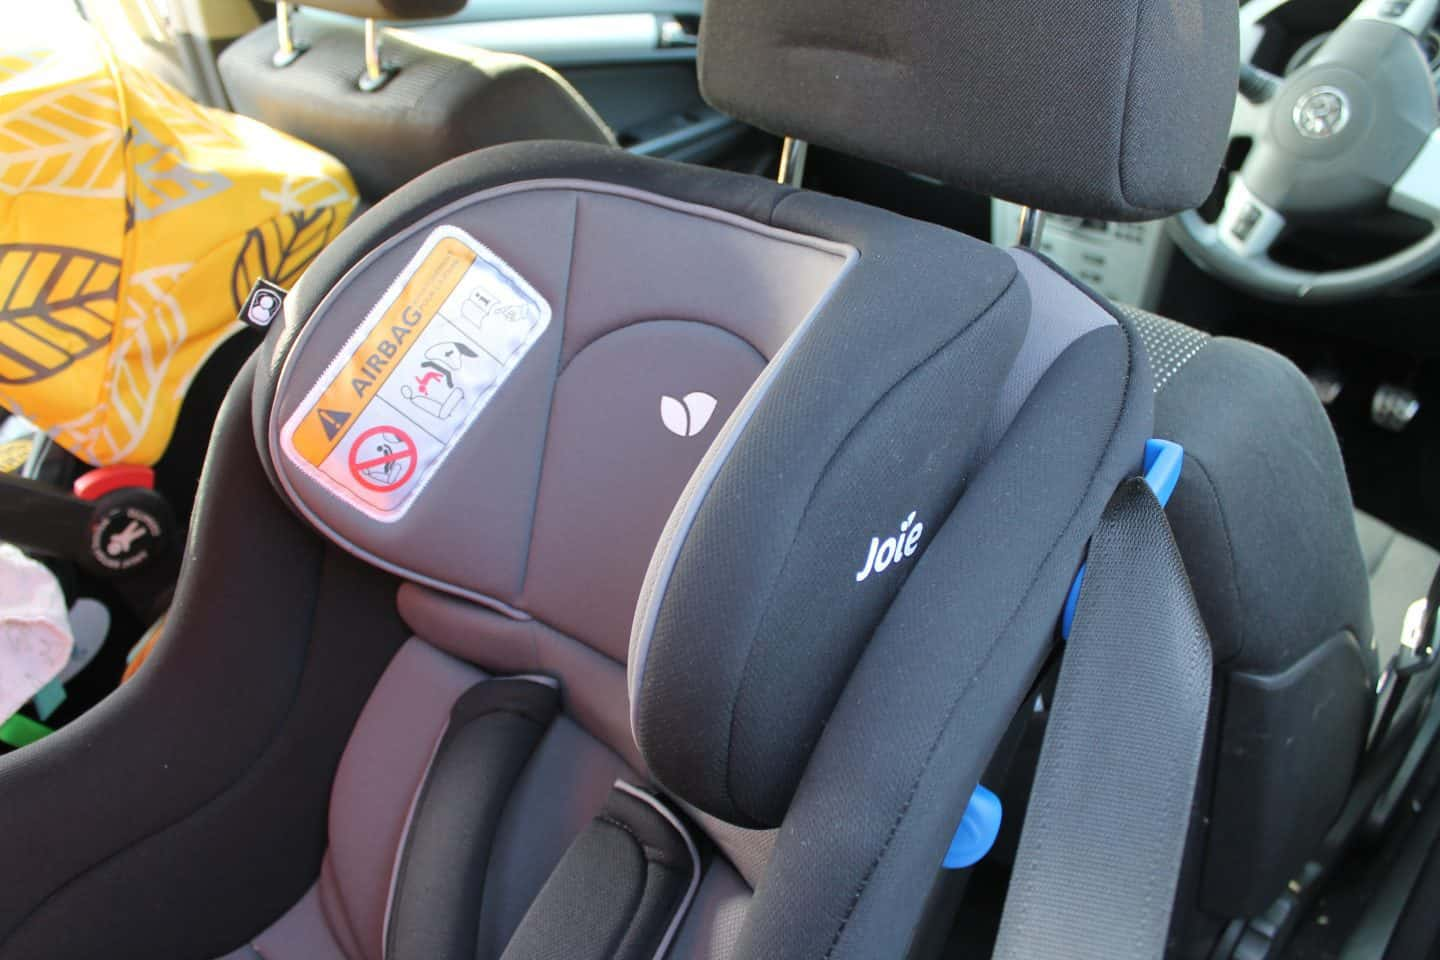 joie steadi rear facing carseat